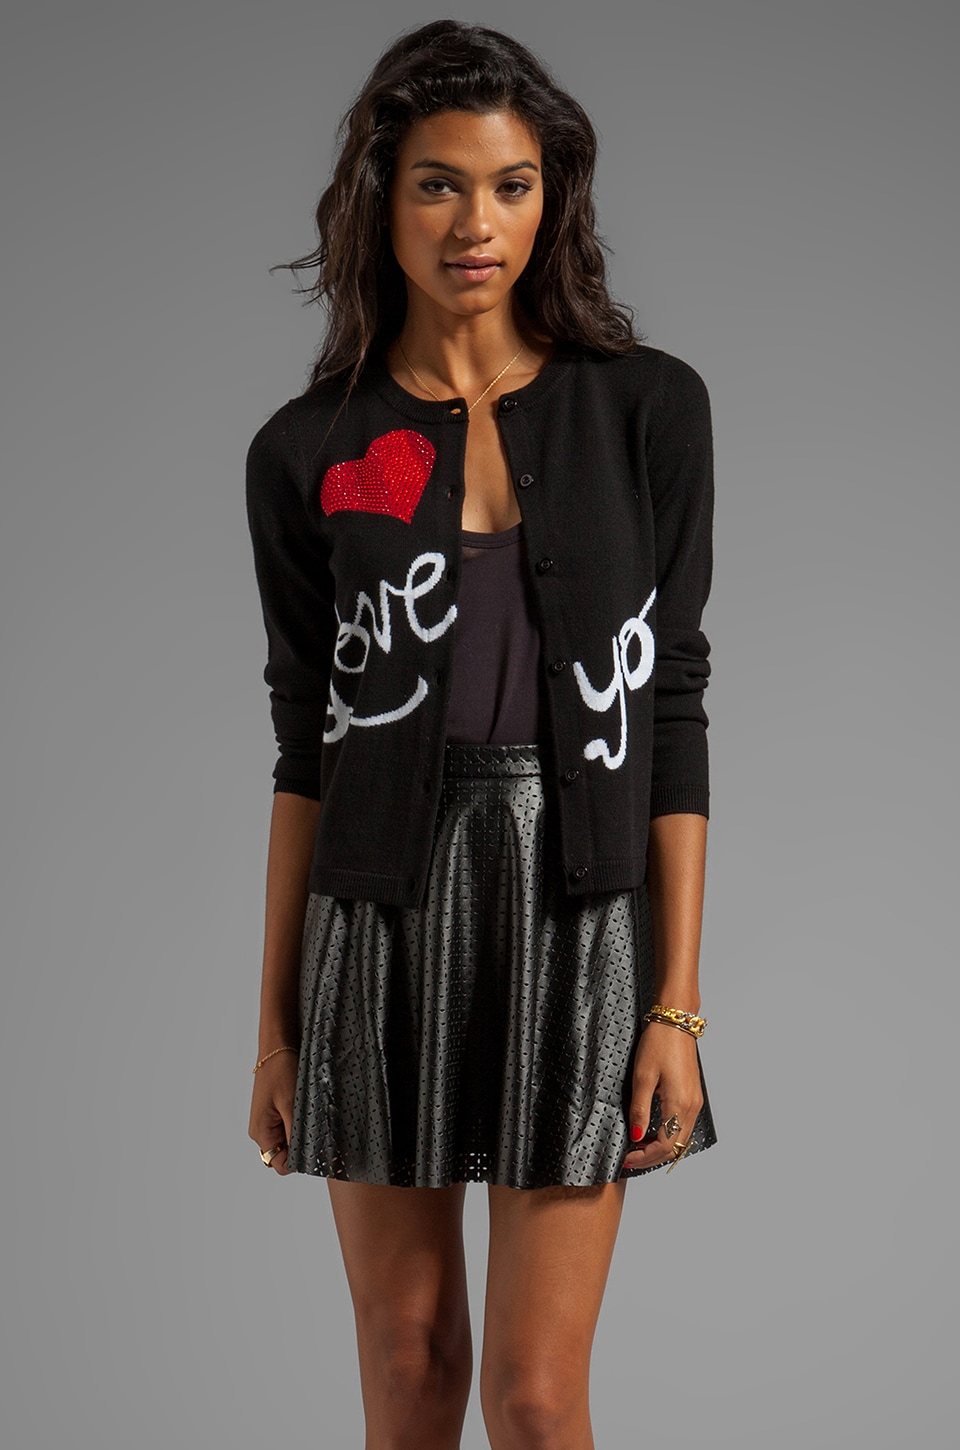 Alice + Olivia Love You Cardigan in Black/White/Red